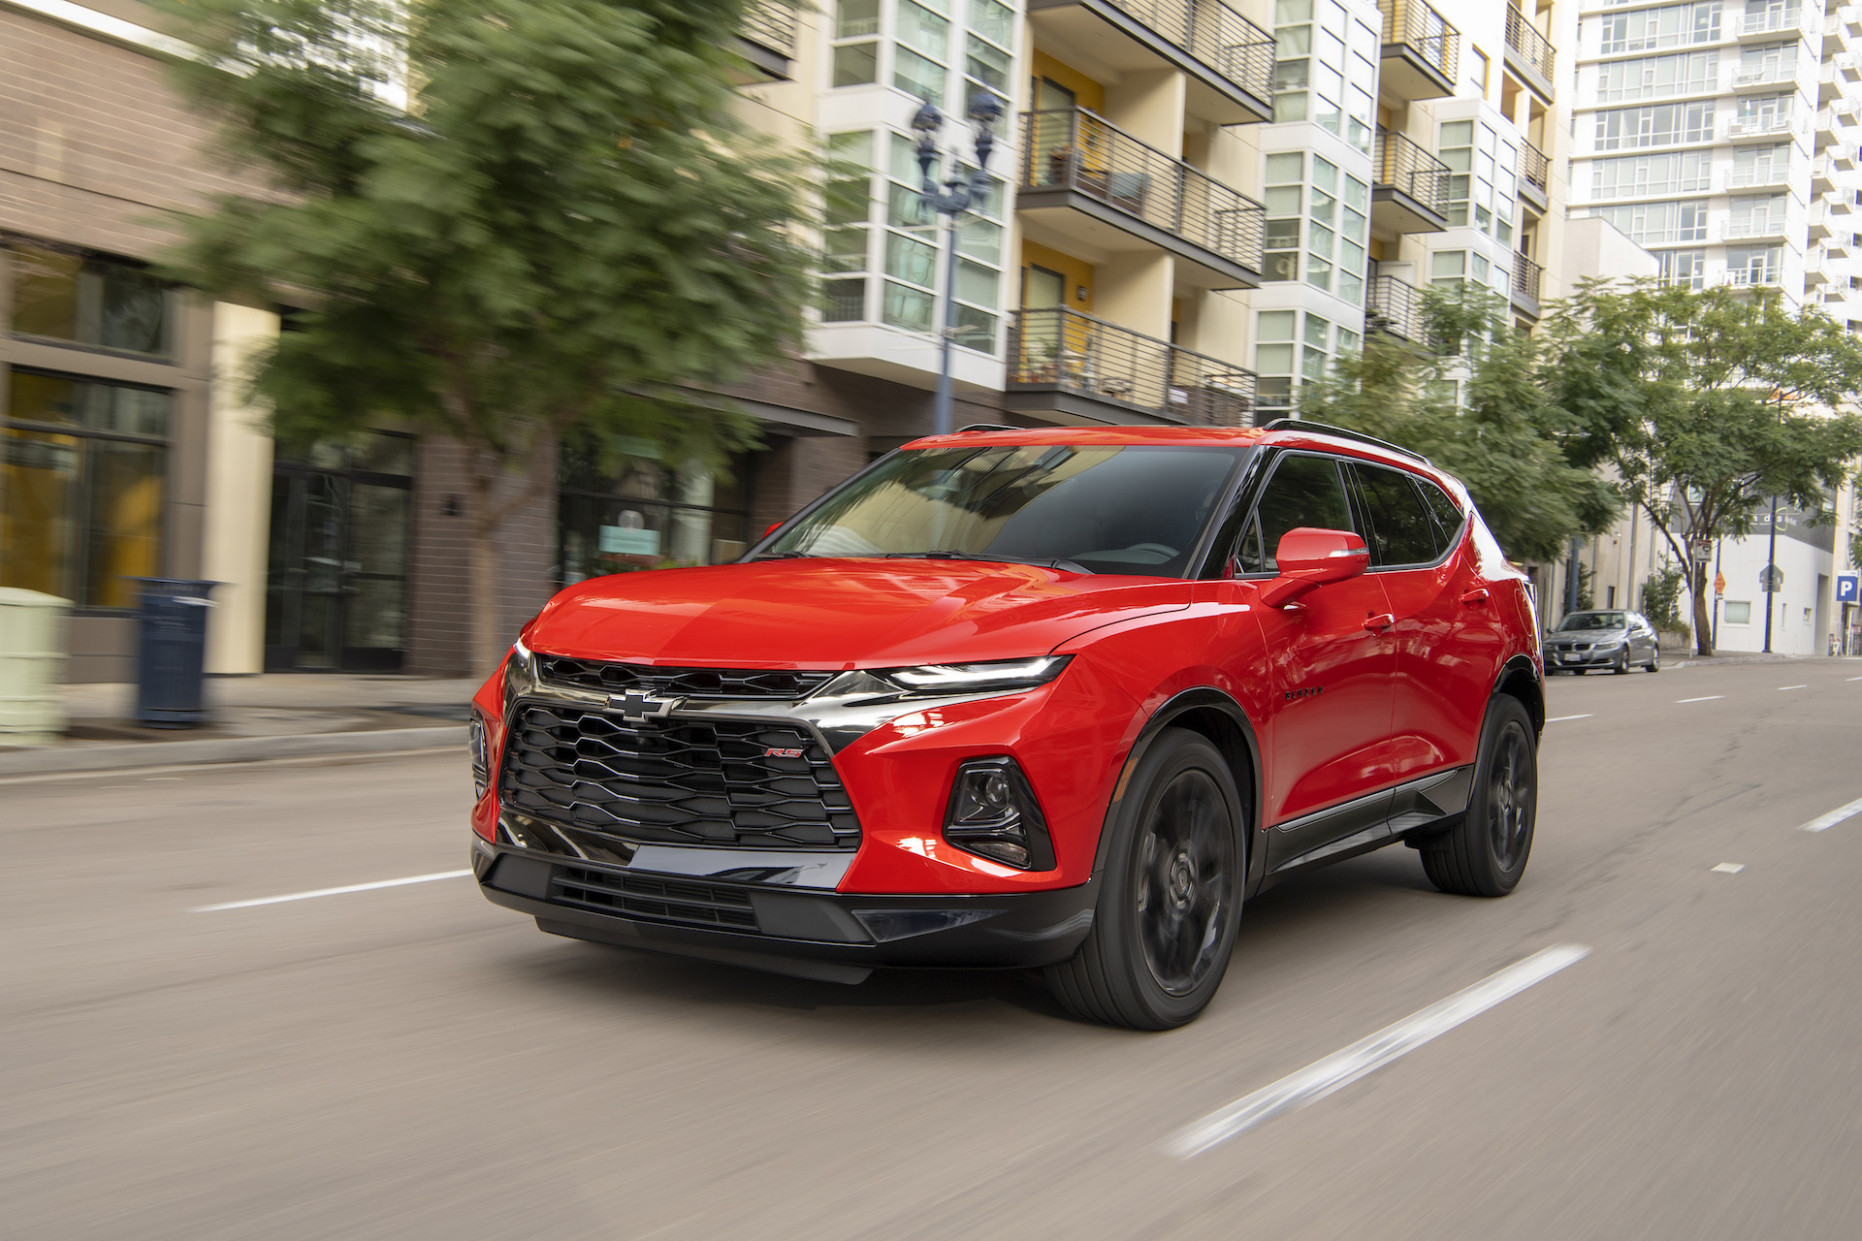 9 Chevrolet Blazer (Chevy) Review, Ratings, Specs, Prices, and ..